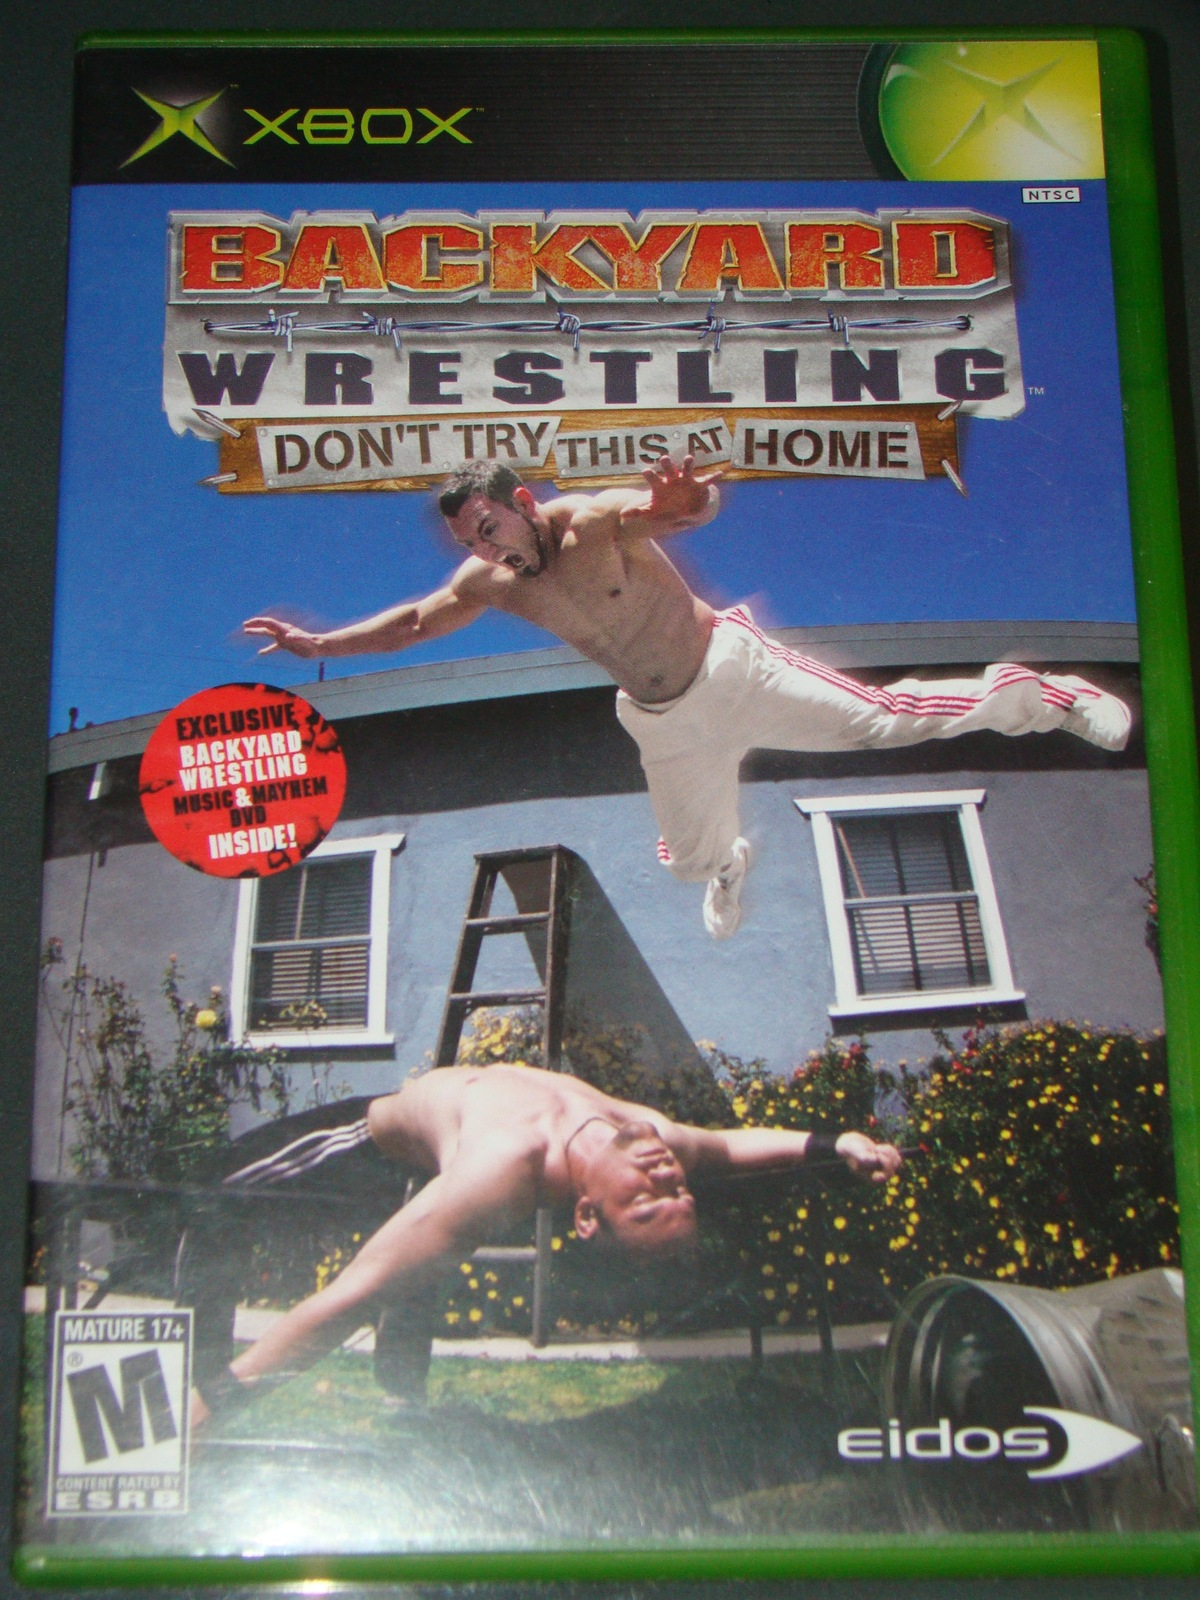 XBOX - BACK YARD WRESTLING - DONT TRY THIS AT HOME (Complete with Instructions)